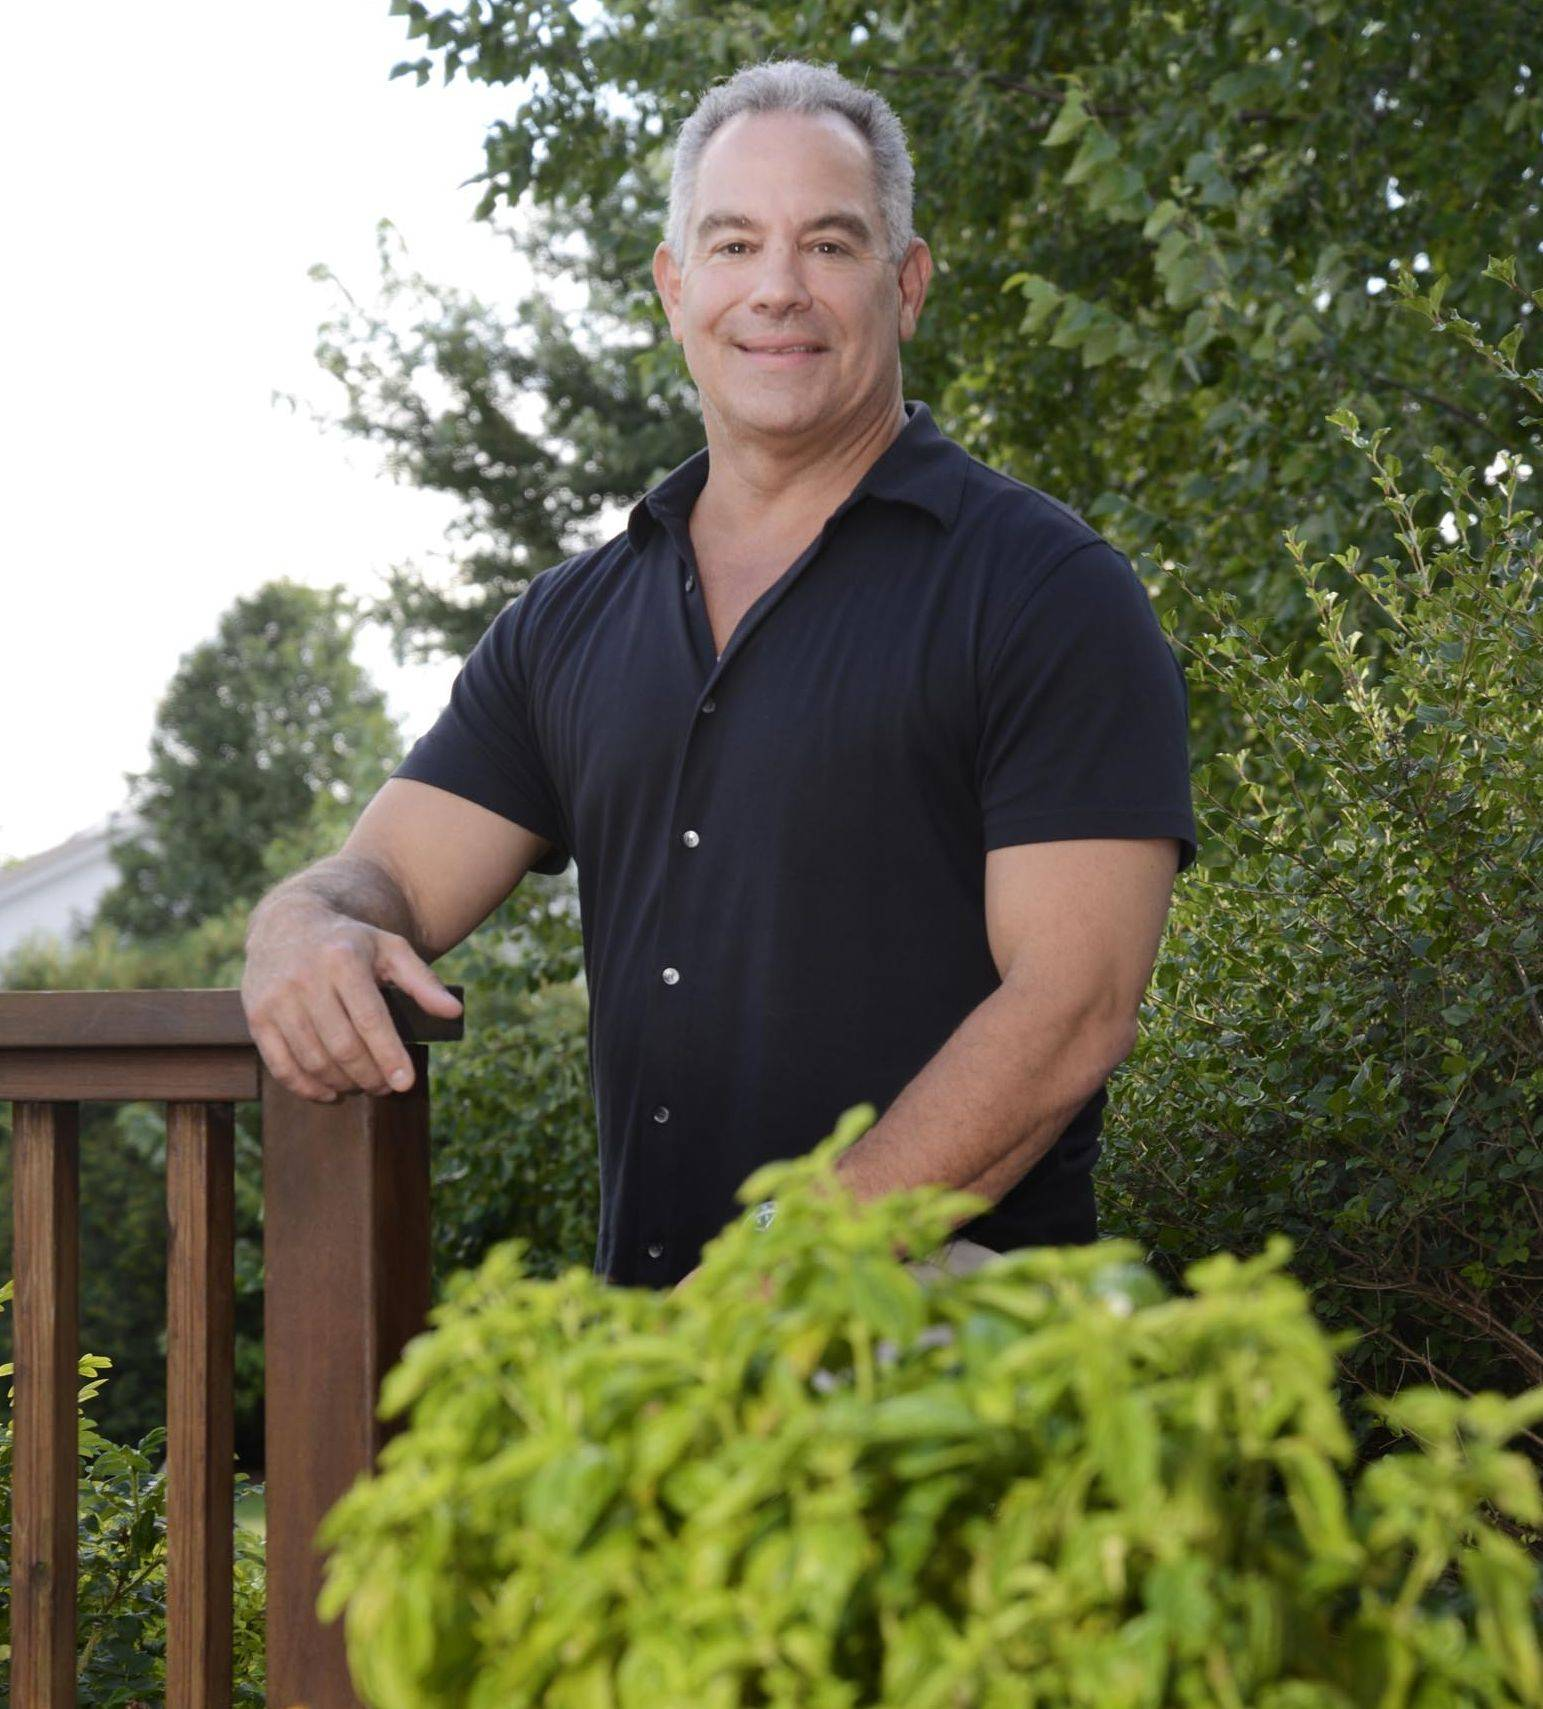 Cook of the Week Challenge competitor Mike Baron, of South Elgin, with basil he grows in his backyard.